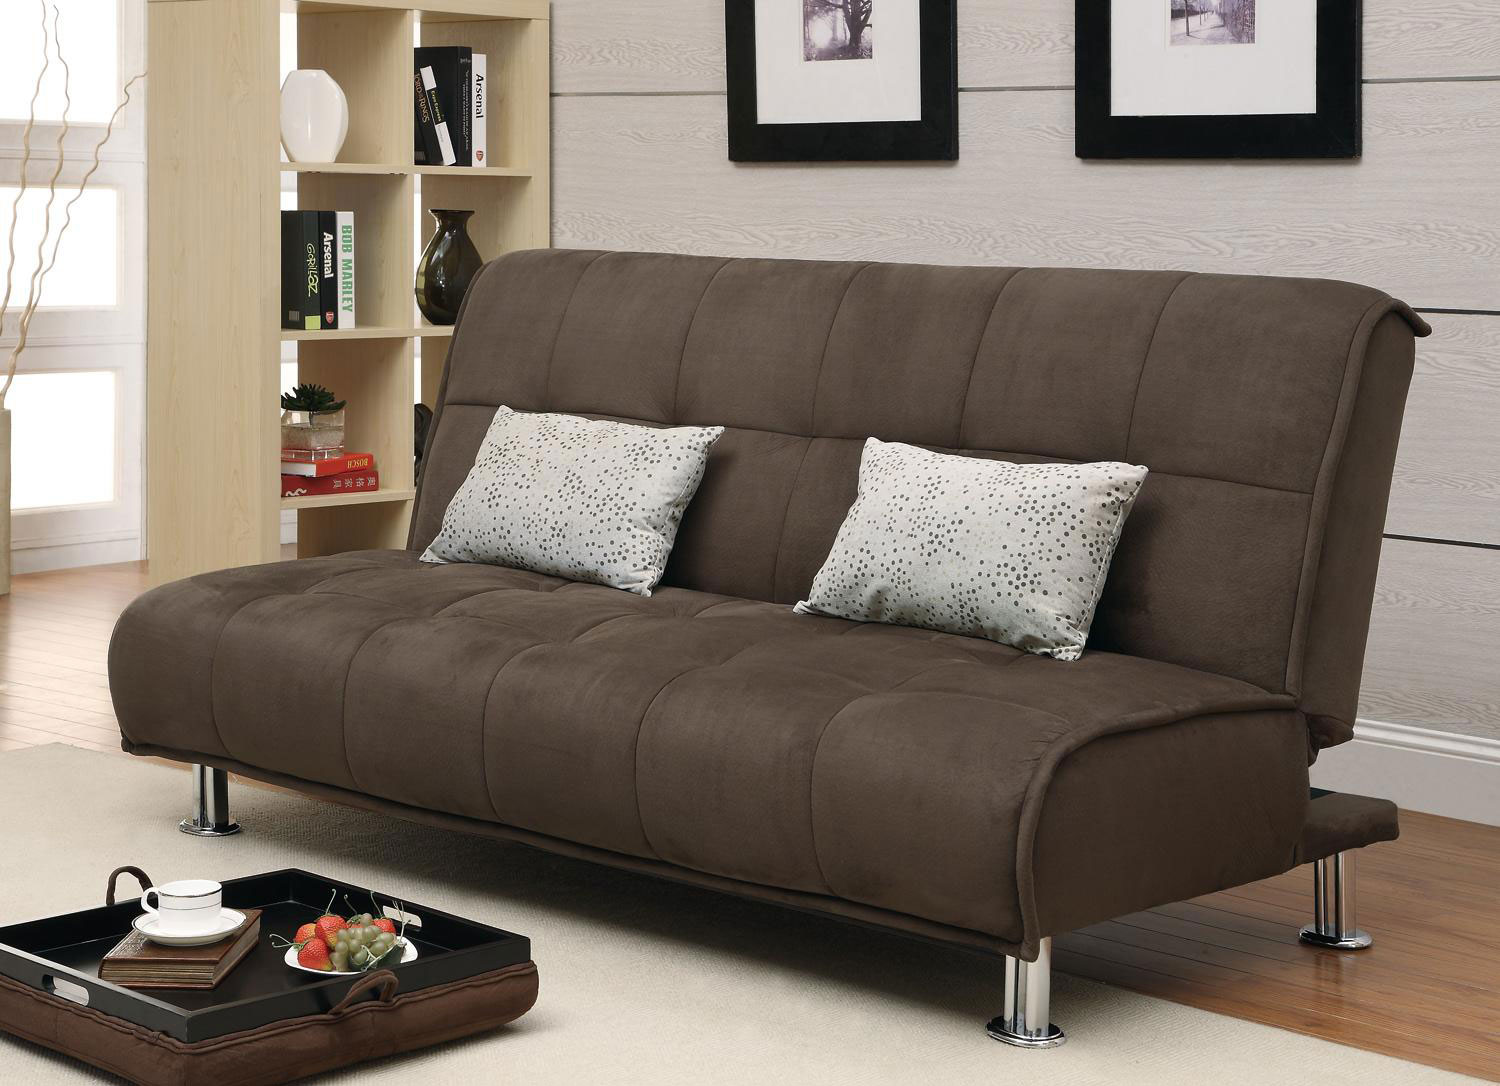 Coaster 300276 Sofa Bed Set Brown 300276 Sofabedset At